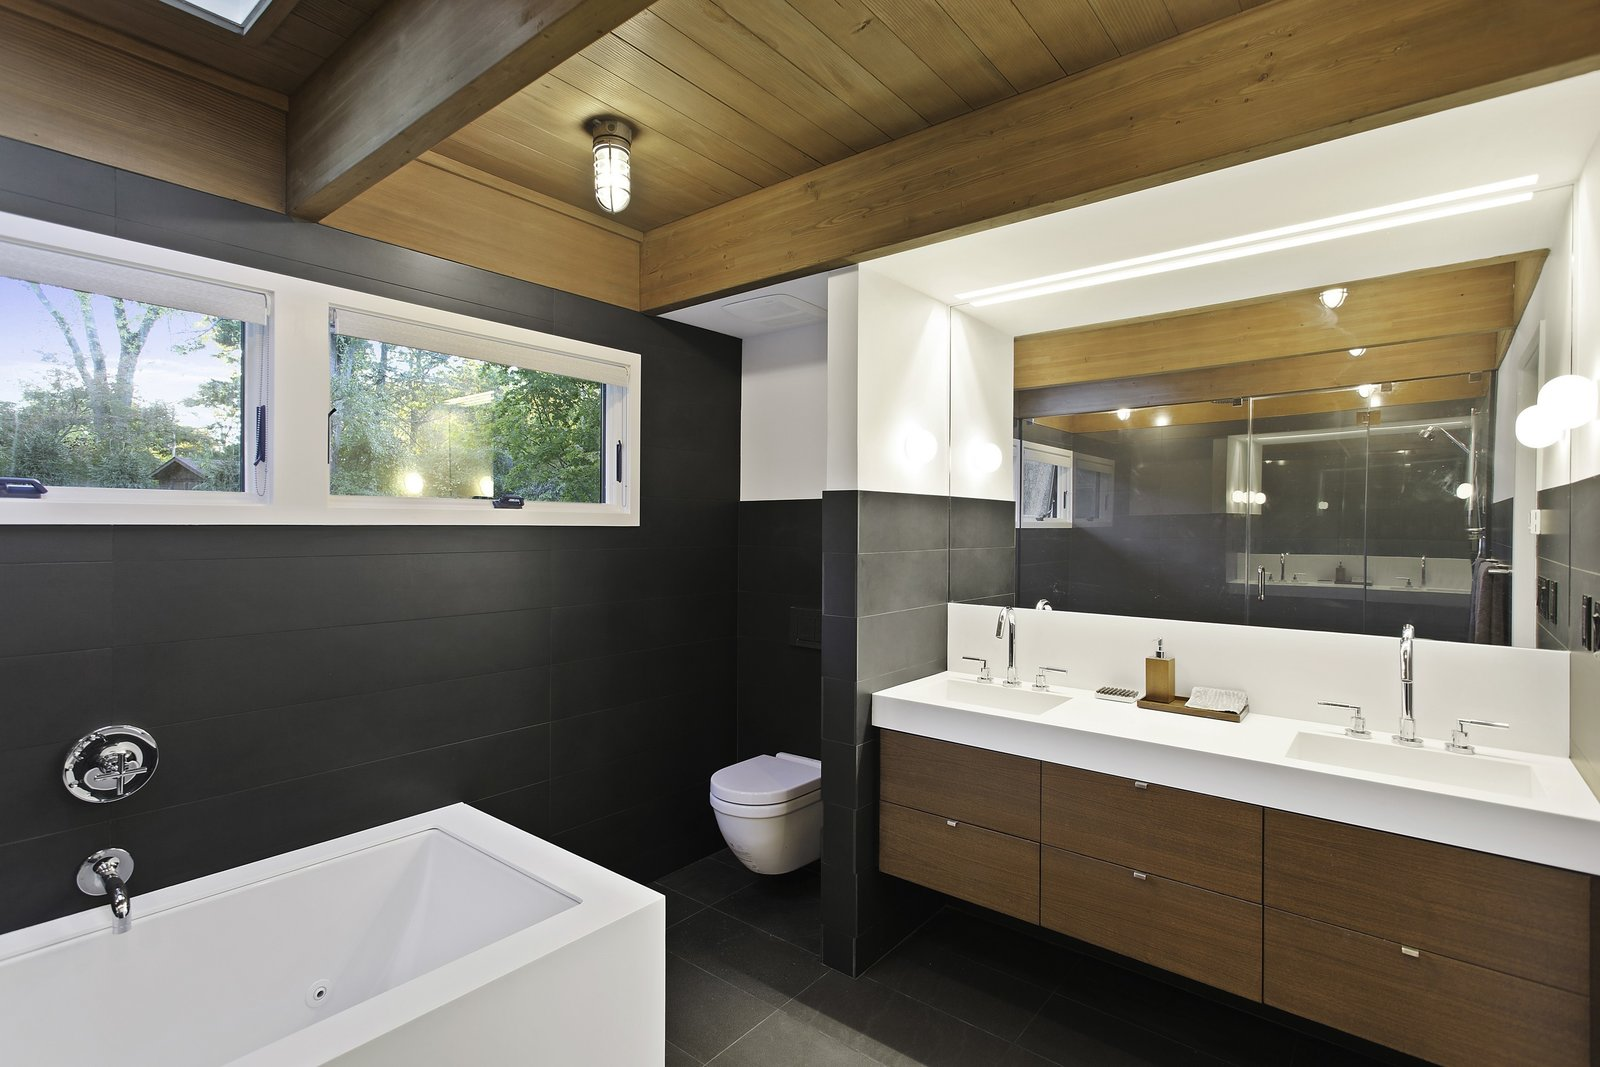 A custom Corian Glacier White countertop finishes a custom vanity made of stained American walnut. Corian also supplied the rectangular sinks, which are topped with Cigno faucets by Lacava. The bathtub is by Zuma, and it stands on a Corian platform.  City Skyline by Kelly Dawson